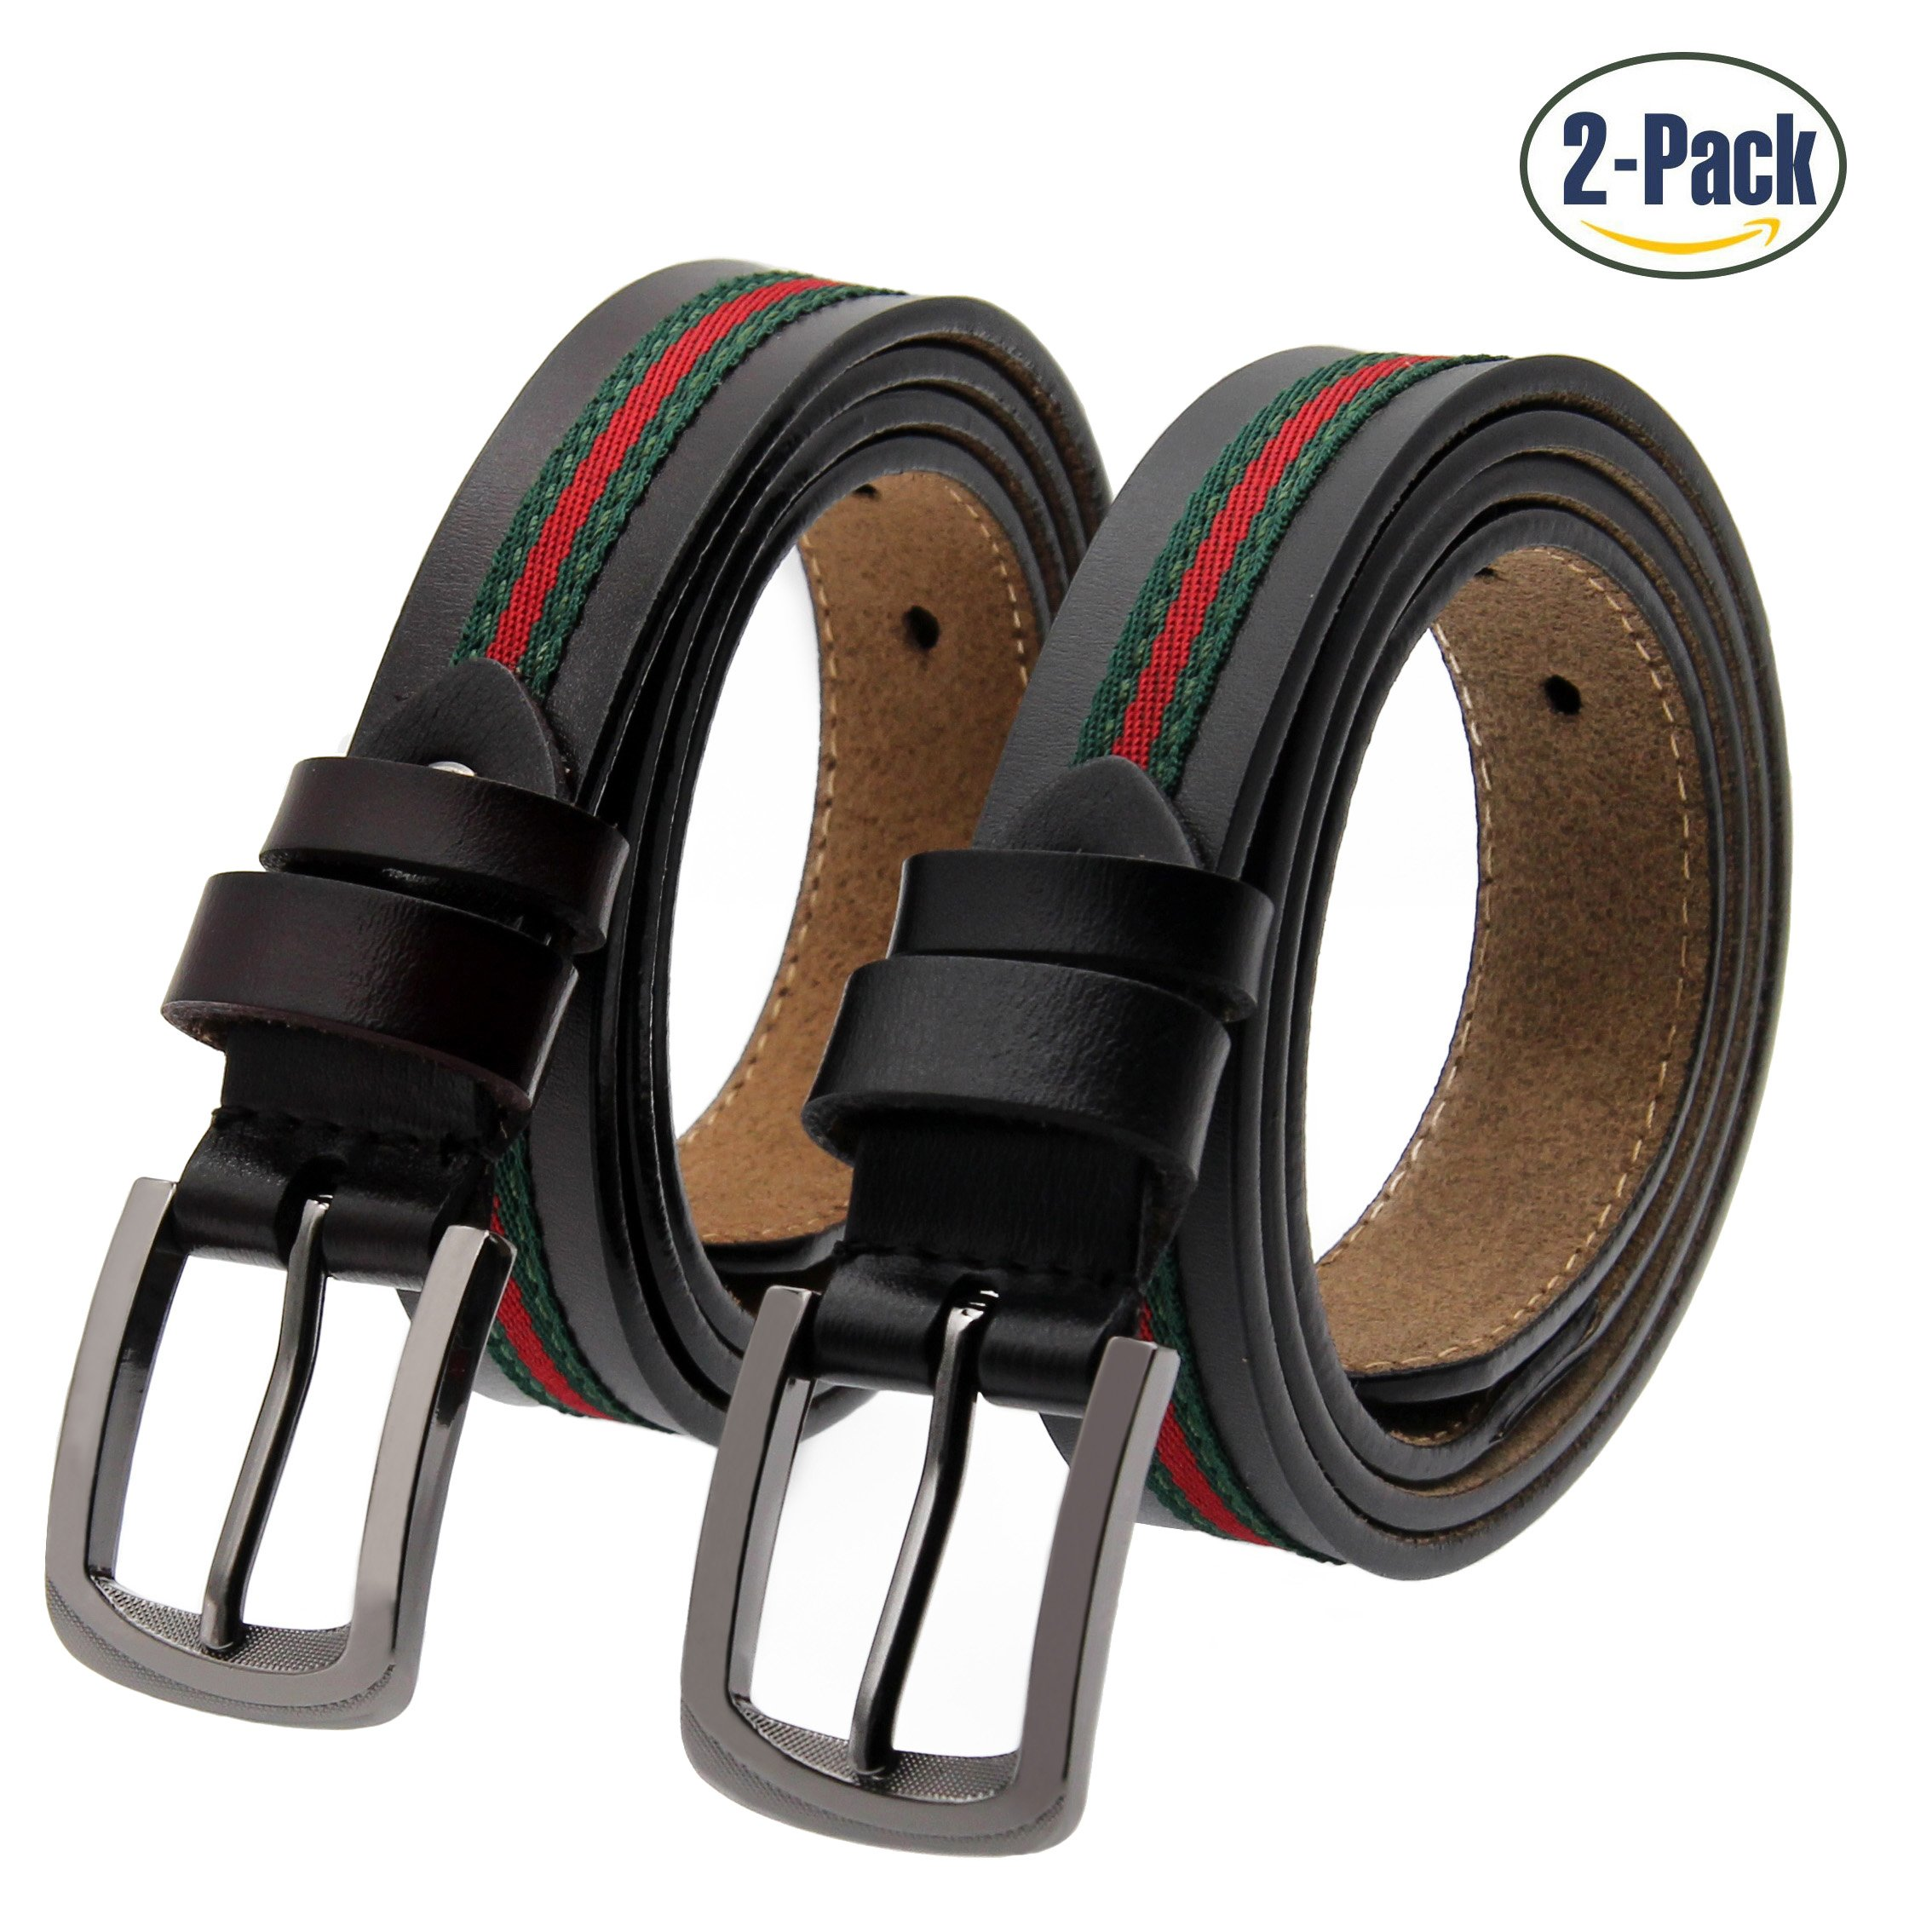 Set of 2 Women's Fashion Genuine Cowhide Leather Belt Vintage Casual Belts for Jeans Shorts Pants Summer Dress for Women With Alloy Pin Buckle By ANDY GRADE (Style B)